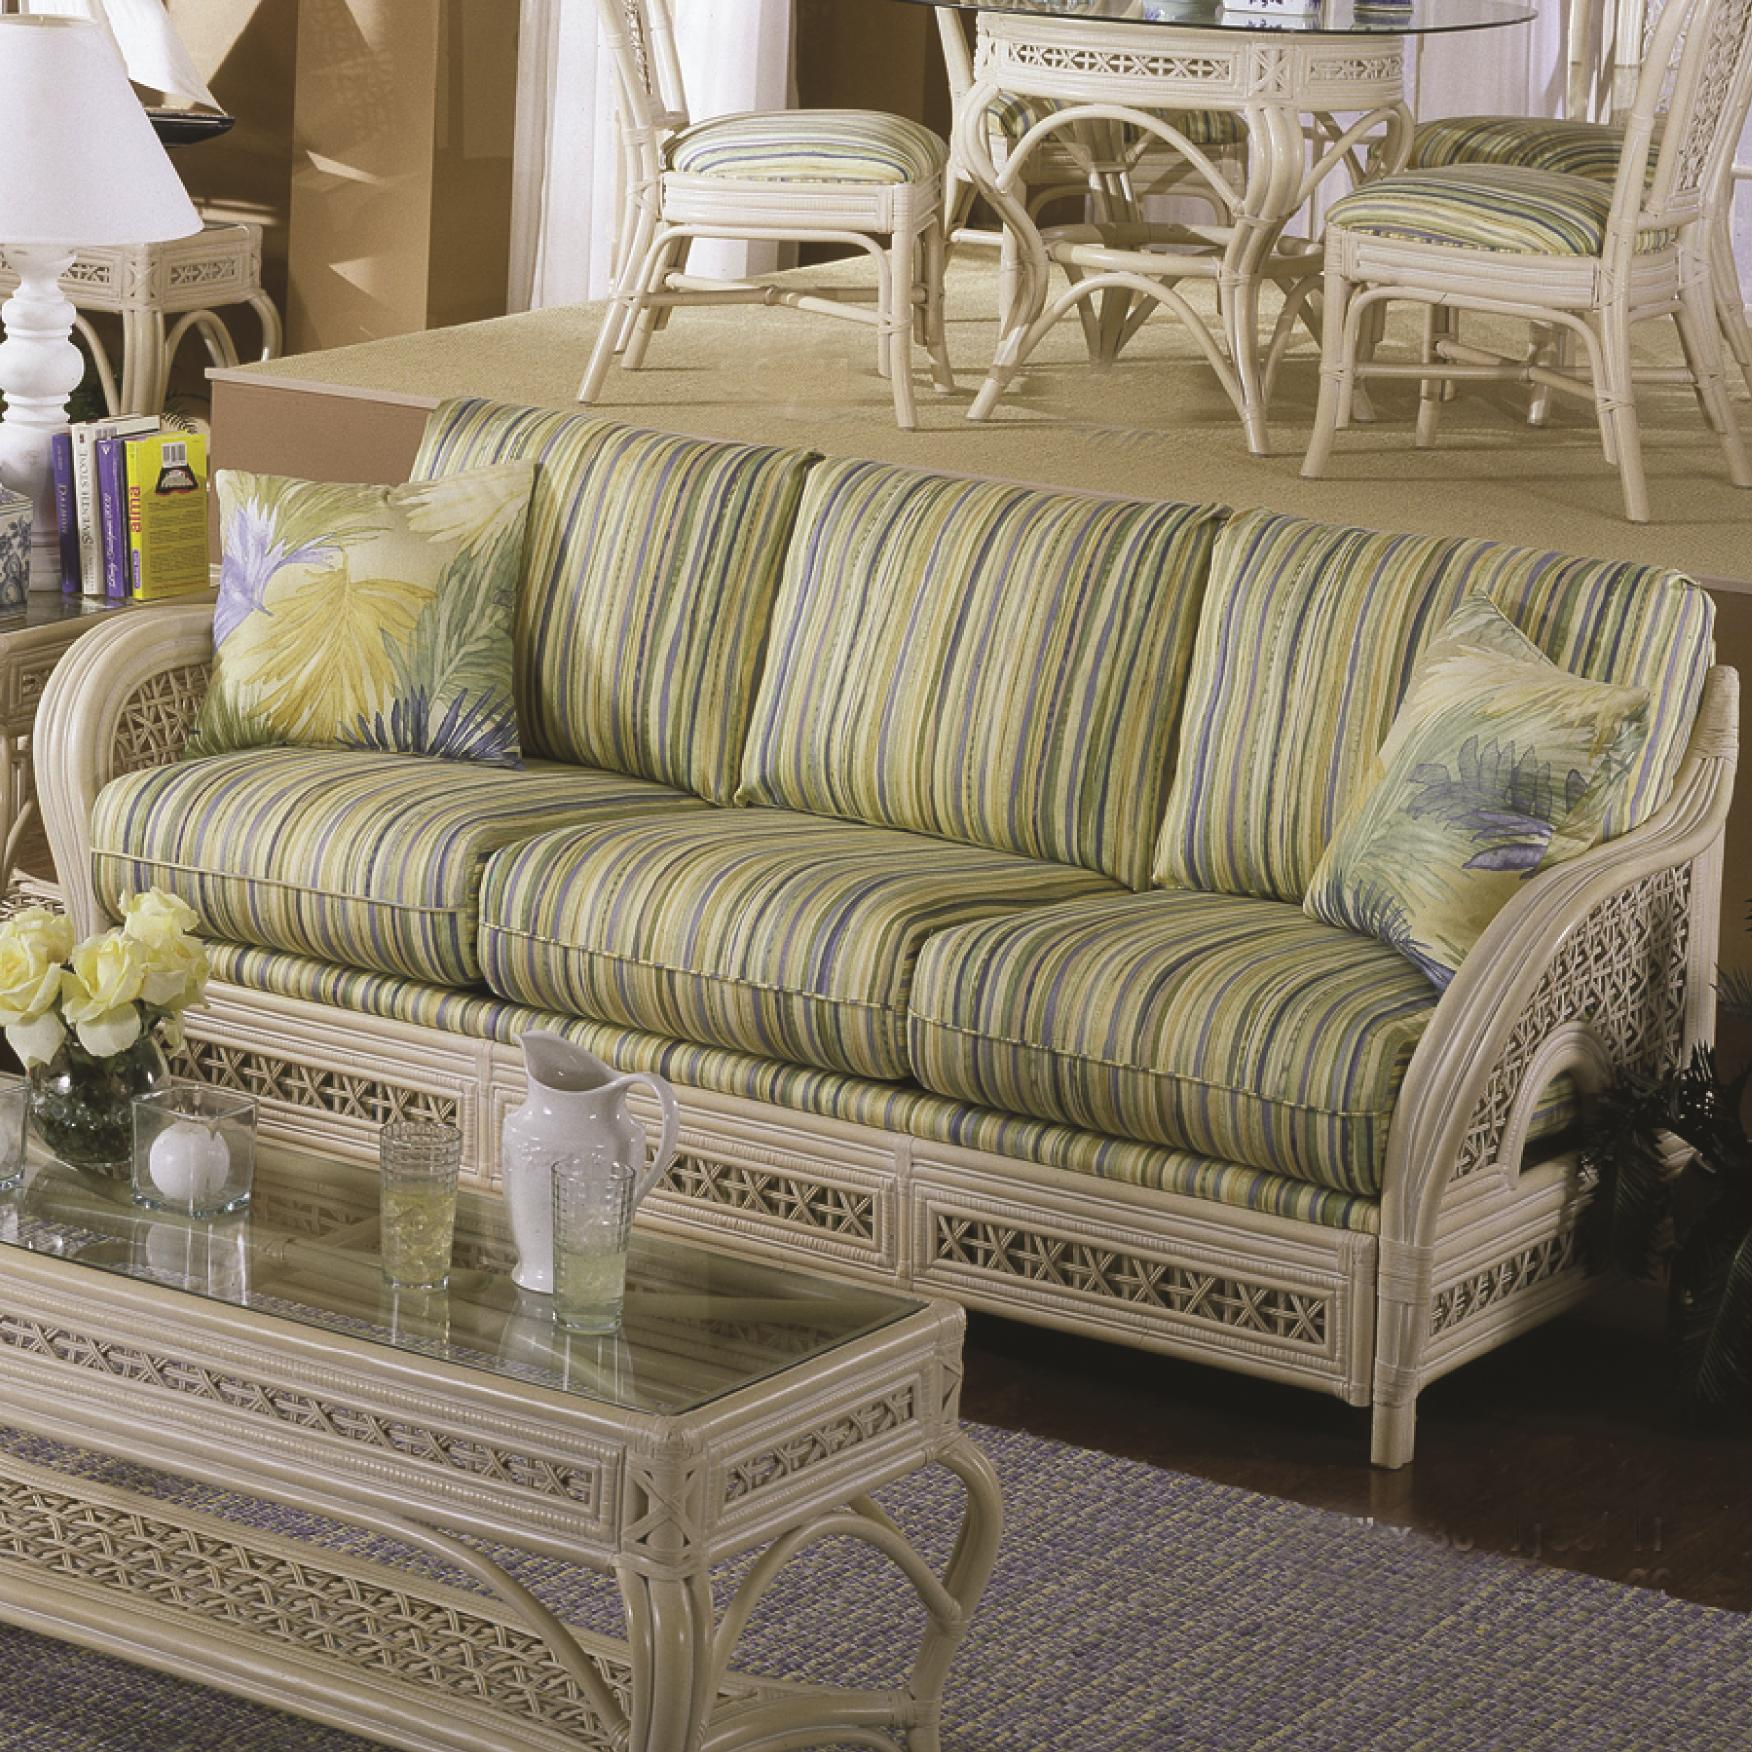 341 Collection Wicker Sofa by Capris Furniture at Esprit Decor Home Furnishings